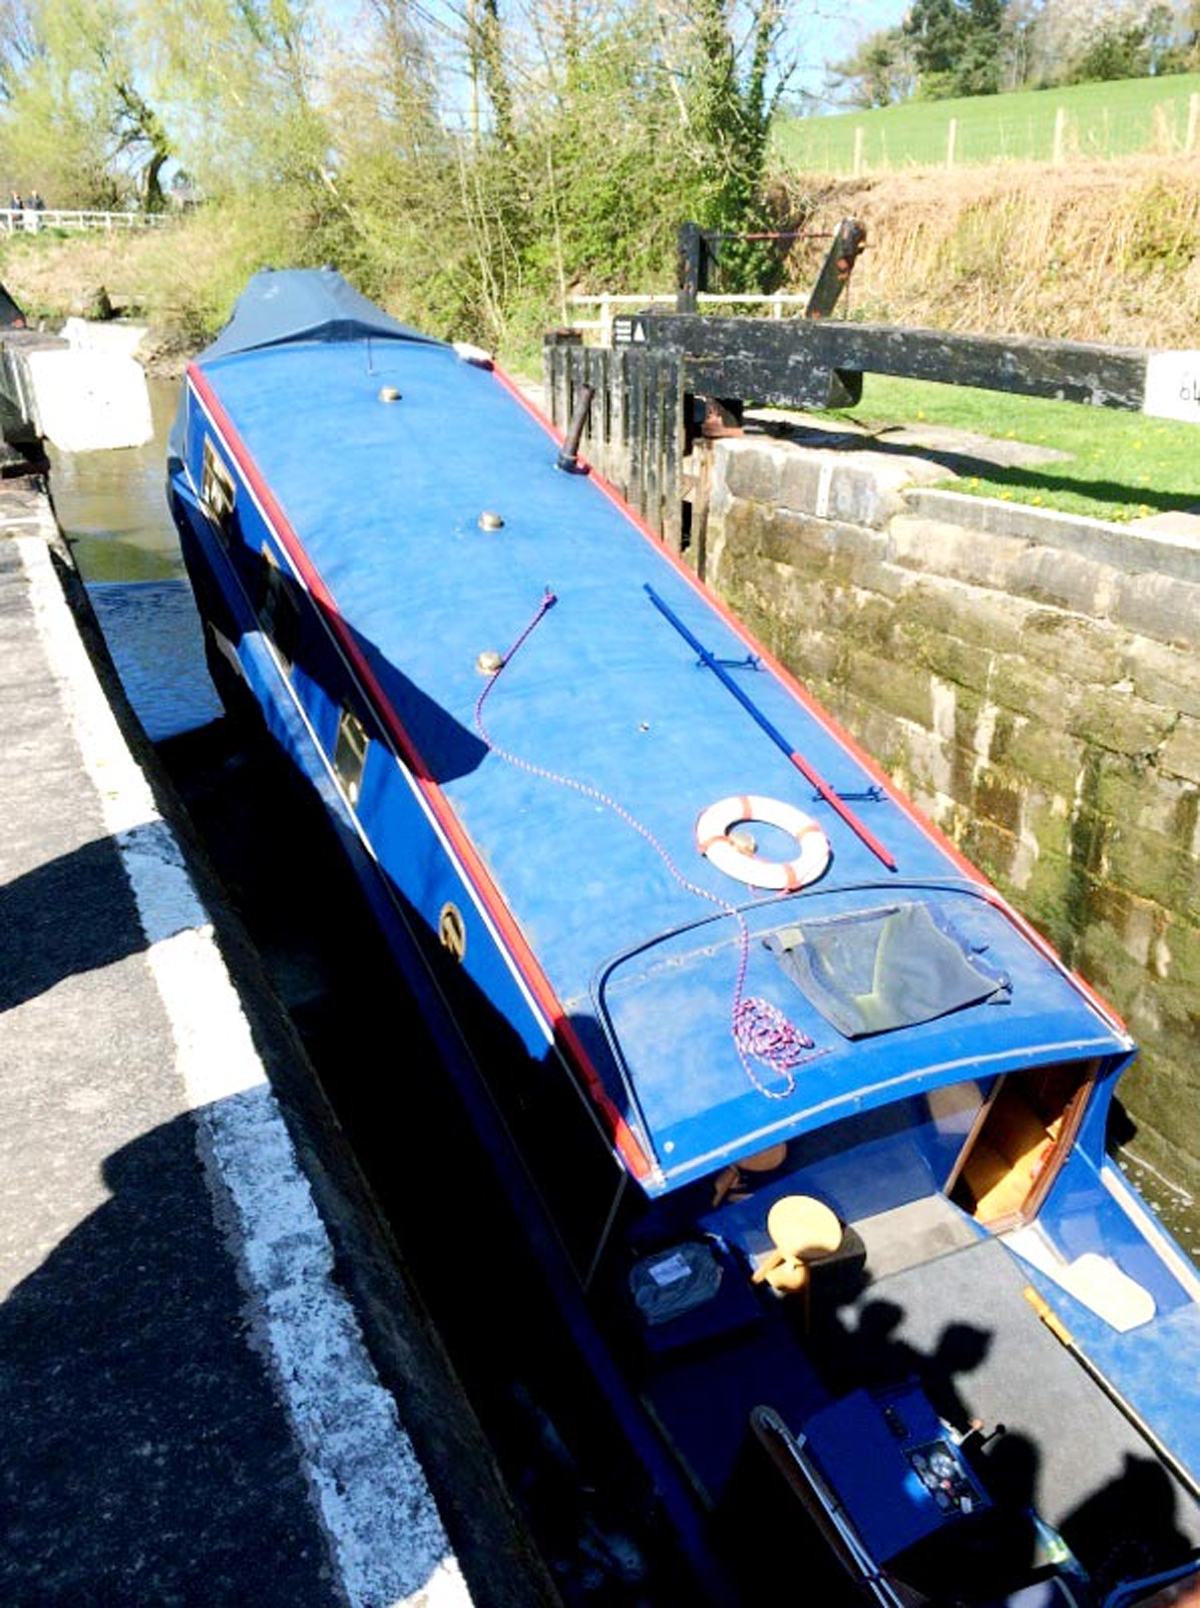 the canal boat wedged in the lock between Chorley and Wheelton.